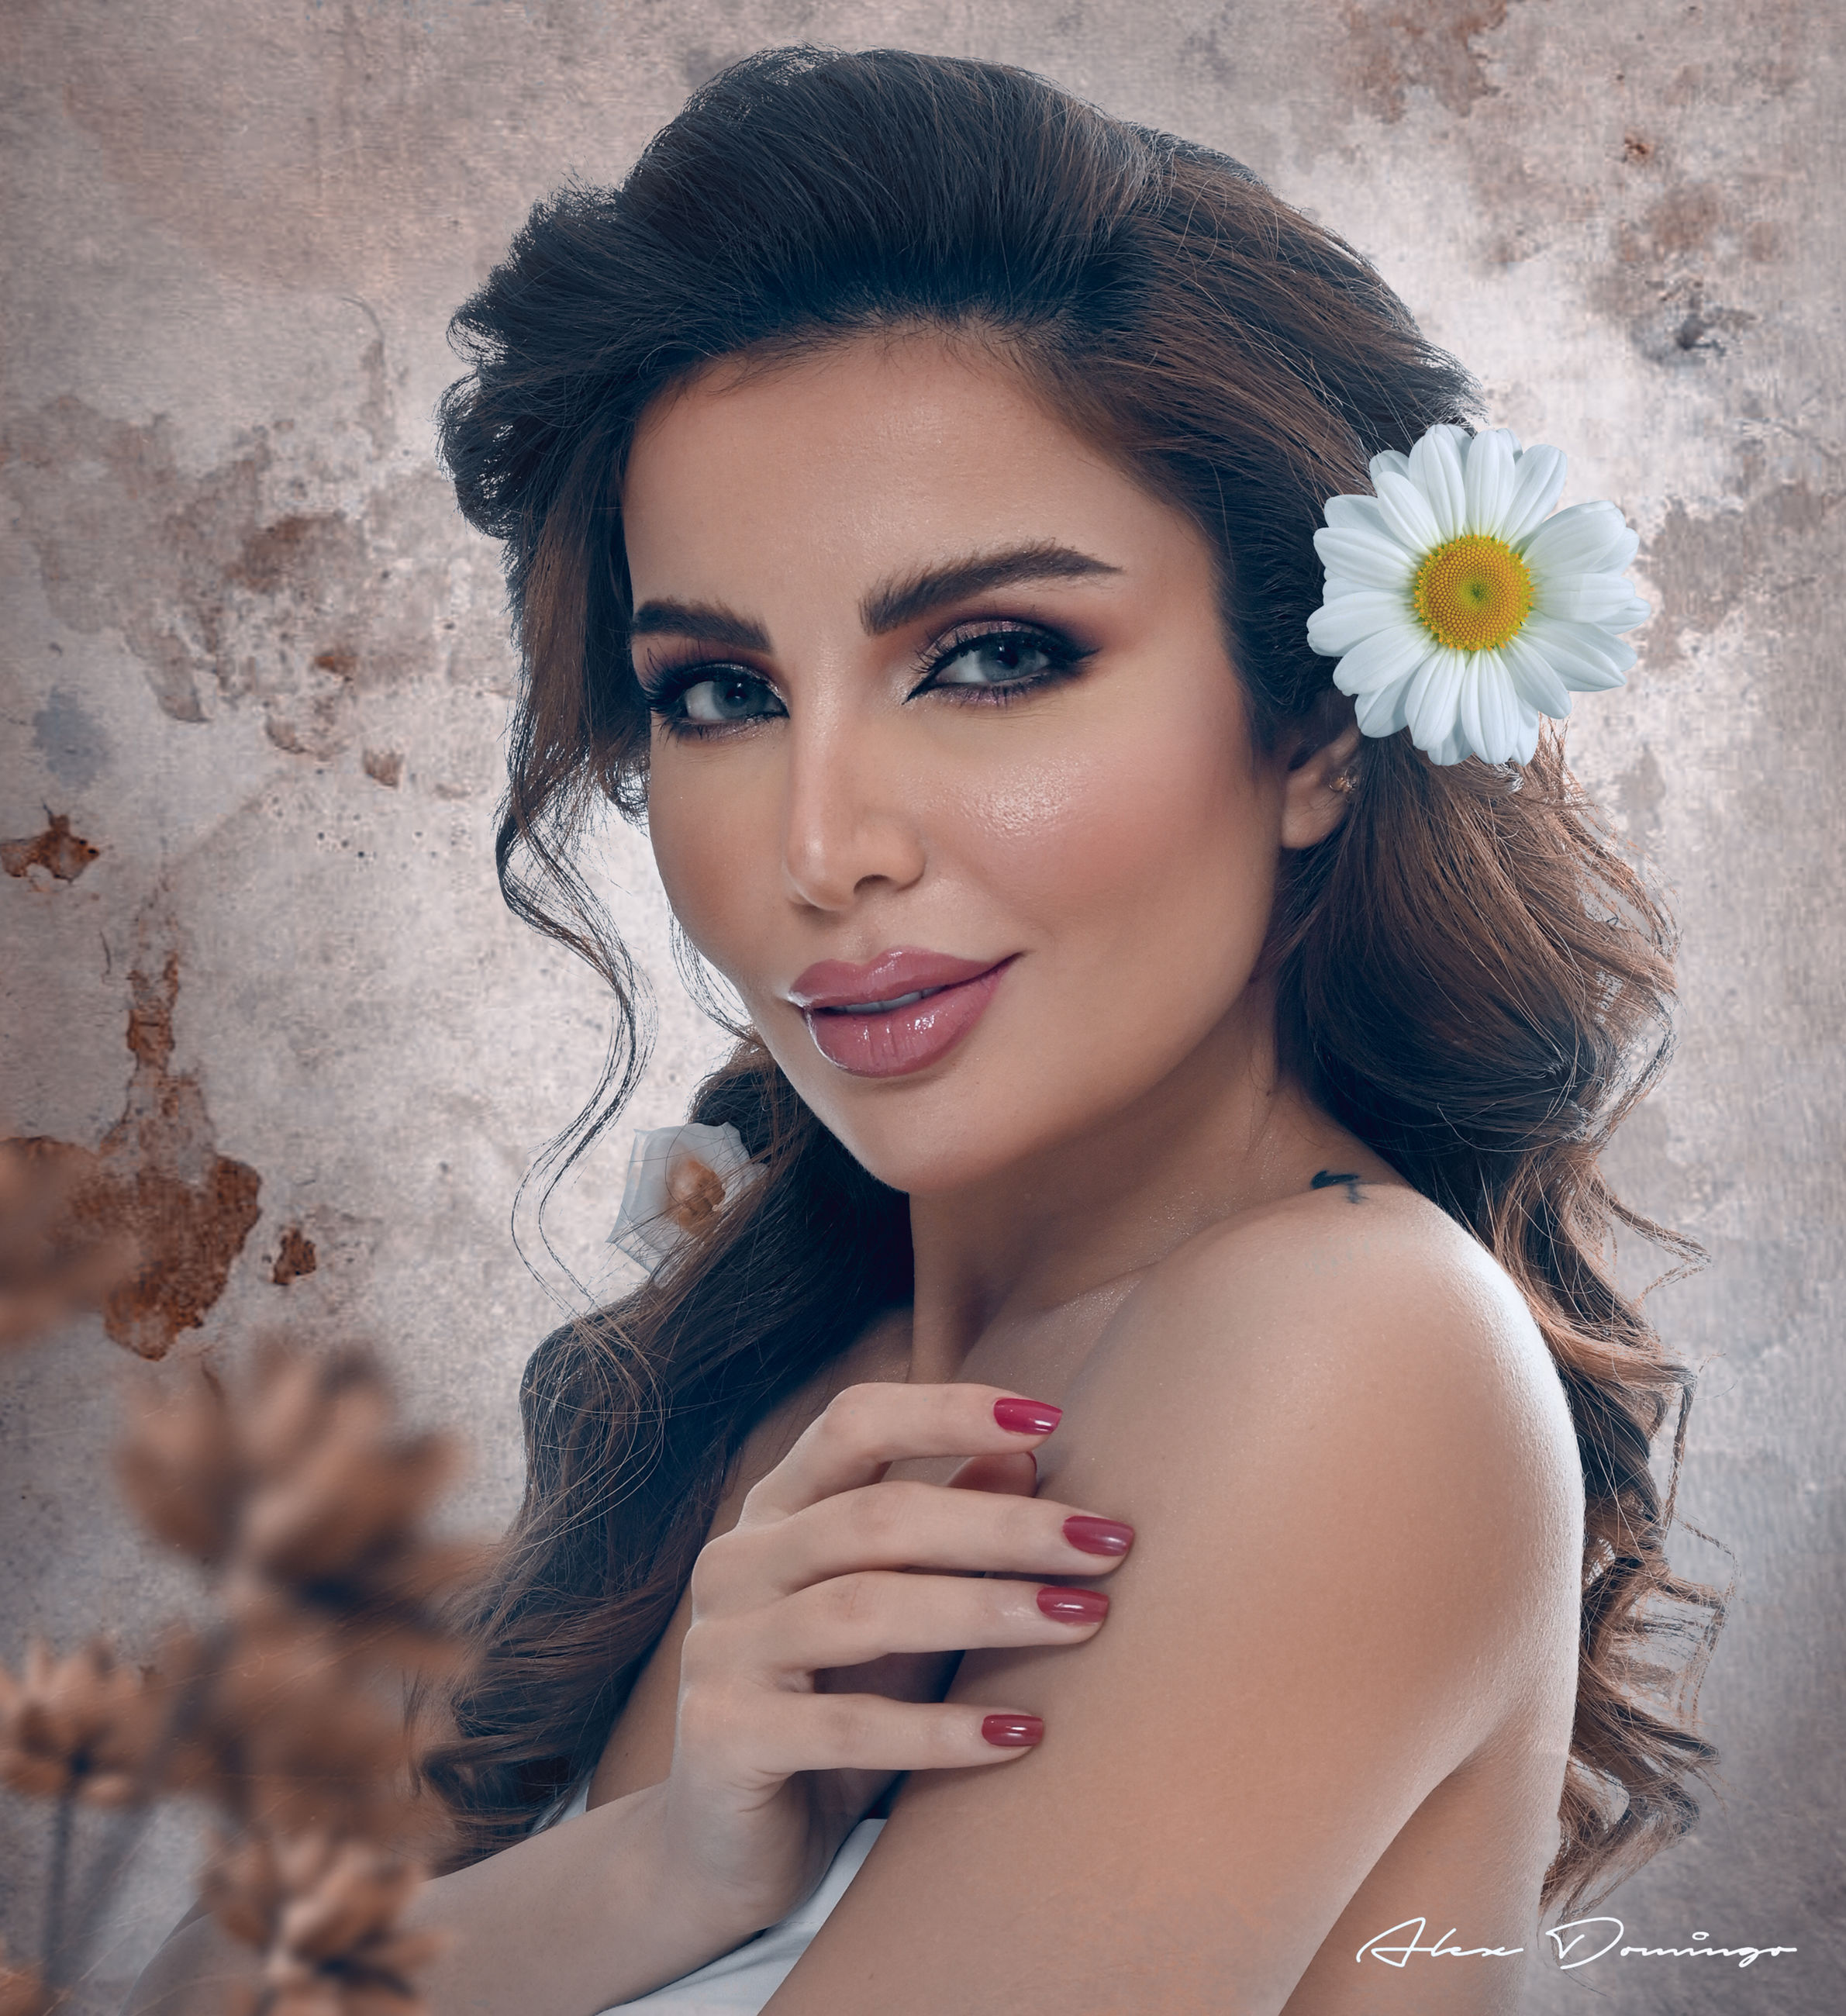 women, portrait, adult, young adult, one person, flower, fashion, flowering plant, looking at camera, hairstyle, make-up, plant, beauty in nature, photo shoot, long hair, brown hair, human face, female, elegance, clothing, glamour, headshot, nature, smiling, freshness, portrait photography, happiness, arts culture and entertainment, person, human eye, skin, lifestyles, cute, indoors, studio shot, human hair, eye, emotion, retro styled